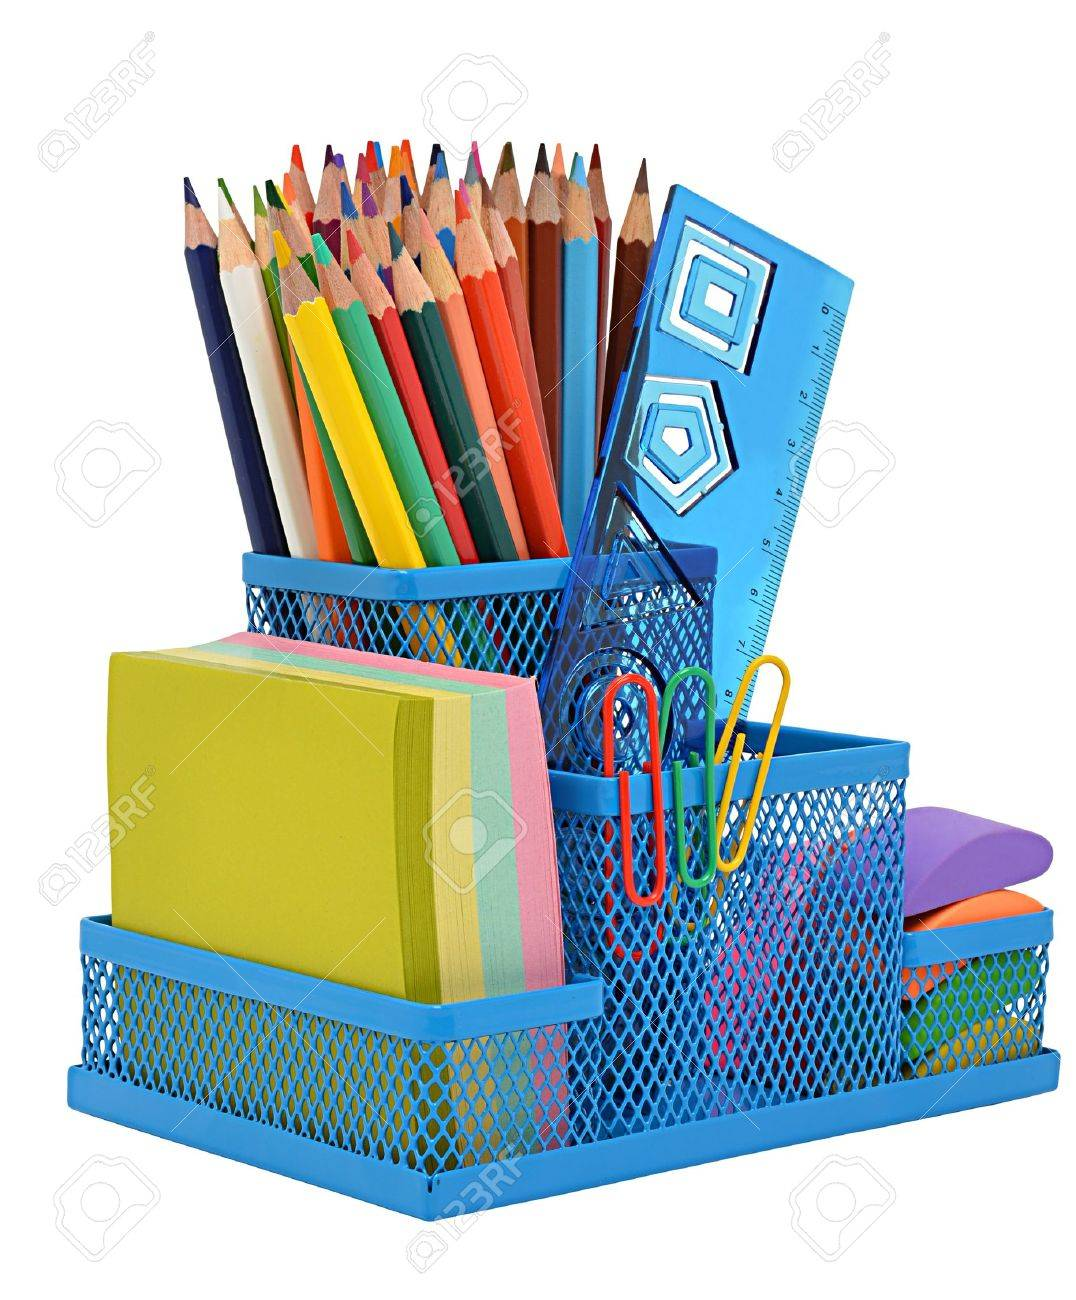 Schoole supplies isolated on the white background - 15091756